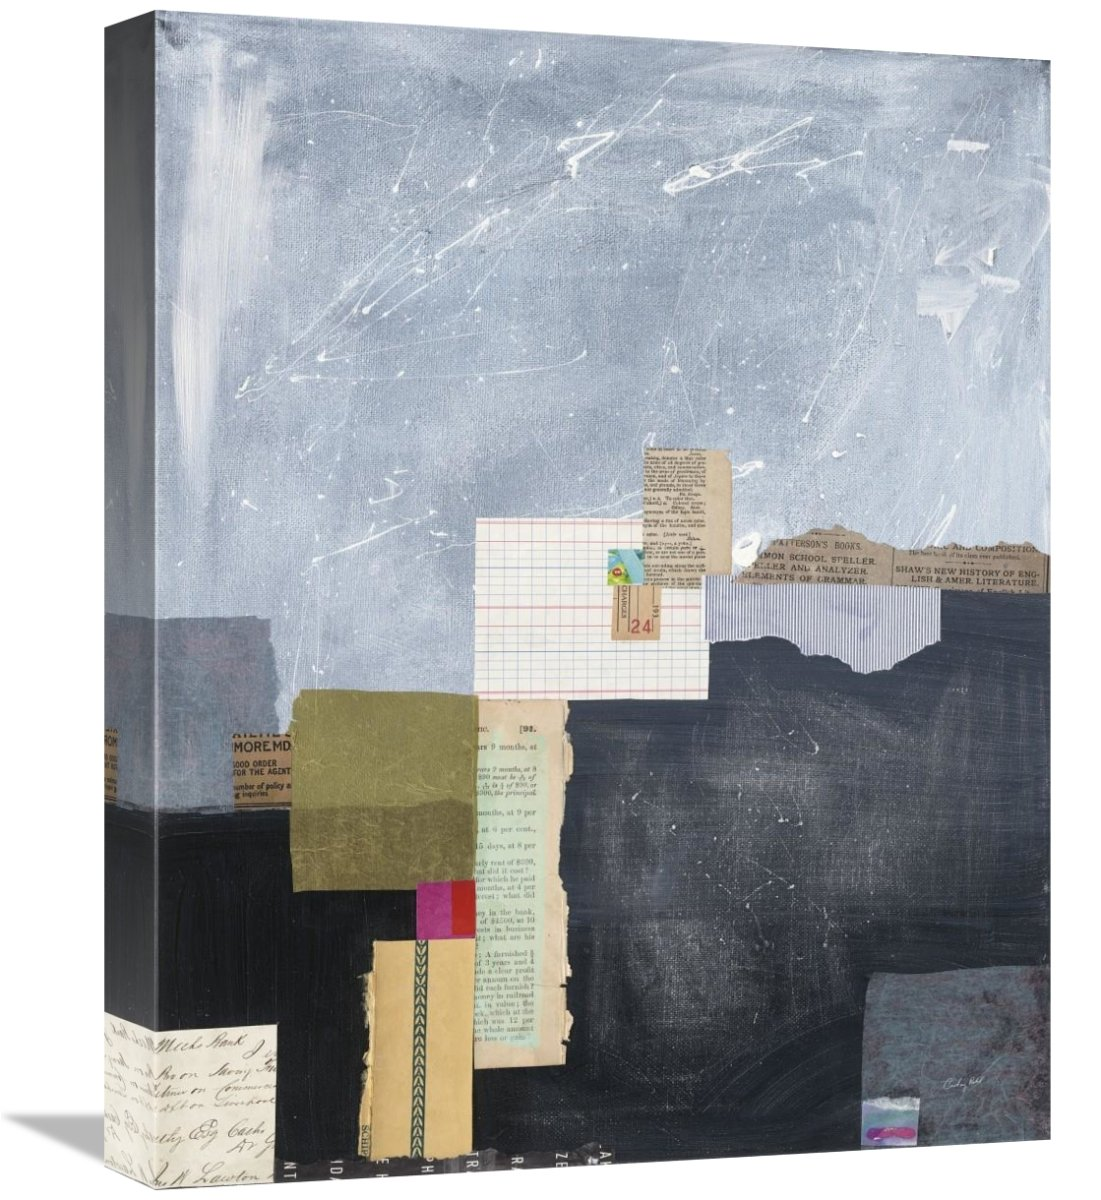 Global Gallery Courtney Prahl Block Abstract I V2 Giclee Stretched Canvas Artwork 16 X 20